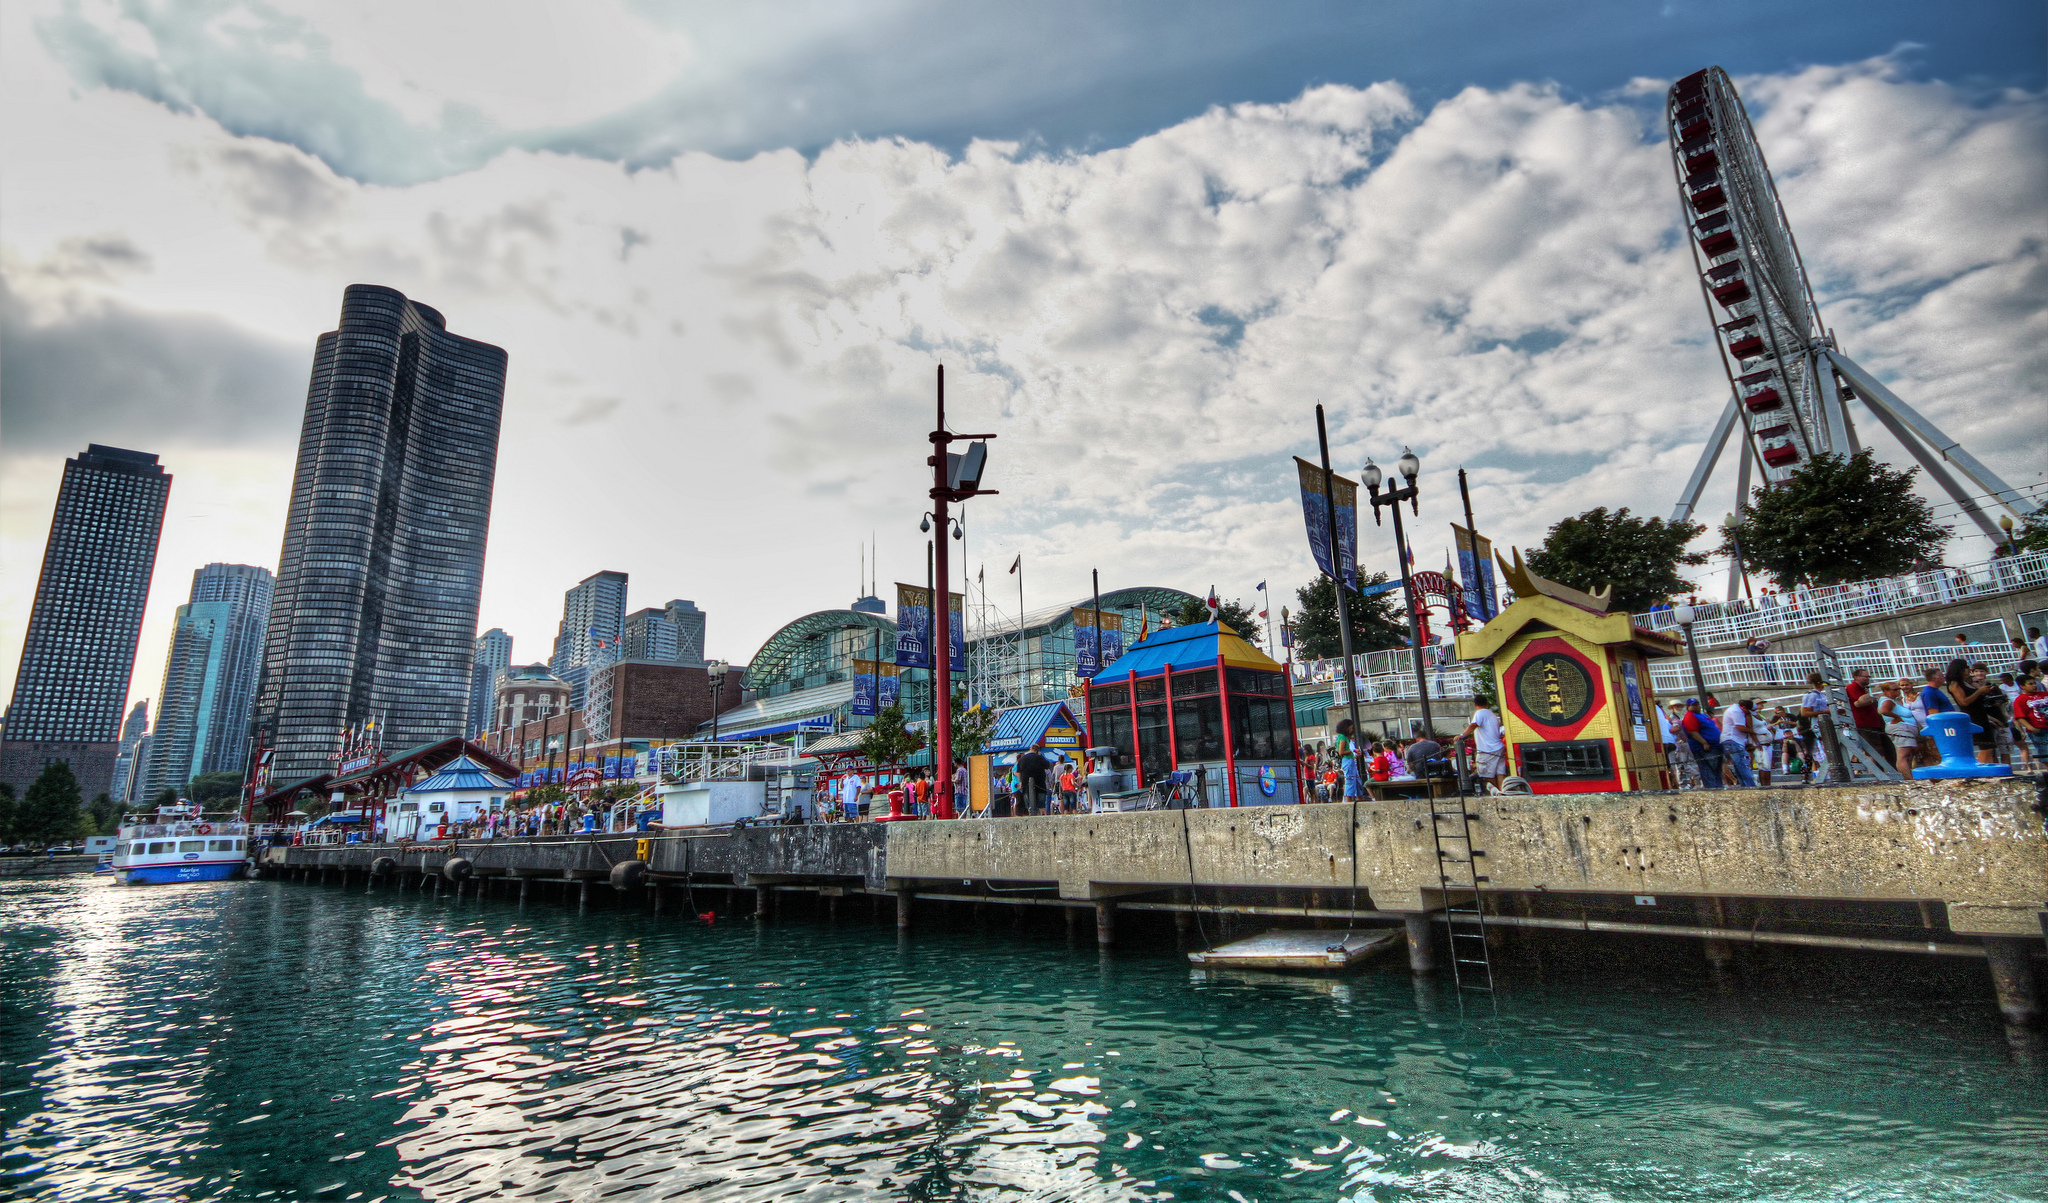 Navy pier theme park in chicago thousand wonders for Nice hotels in chicago downtown